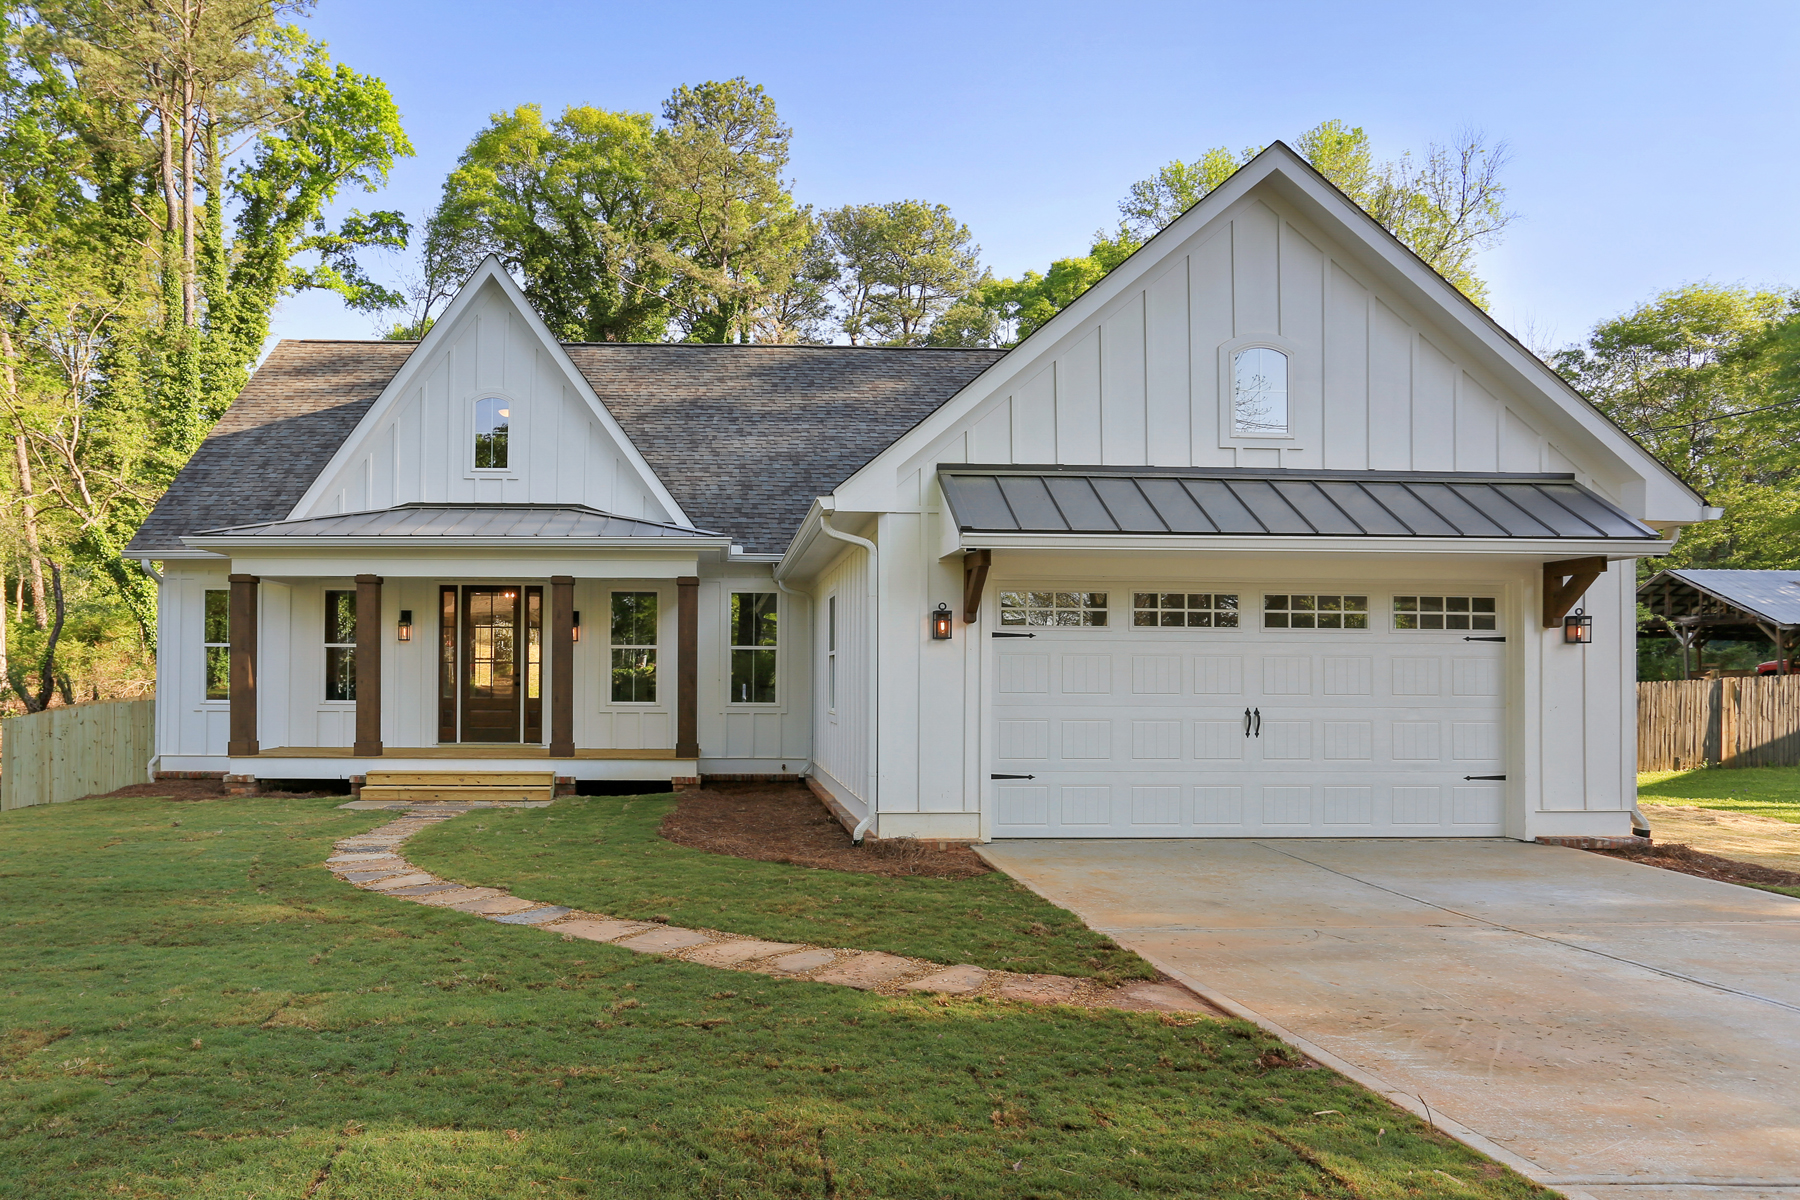 Single Family Homes for Sale at Beautiful New Construction Close To Smyrna Green and Village 1165 Love Street SE Smyrna, Georgia 30080 United States